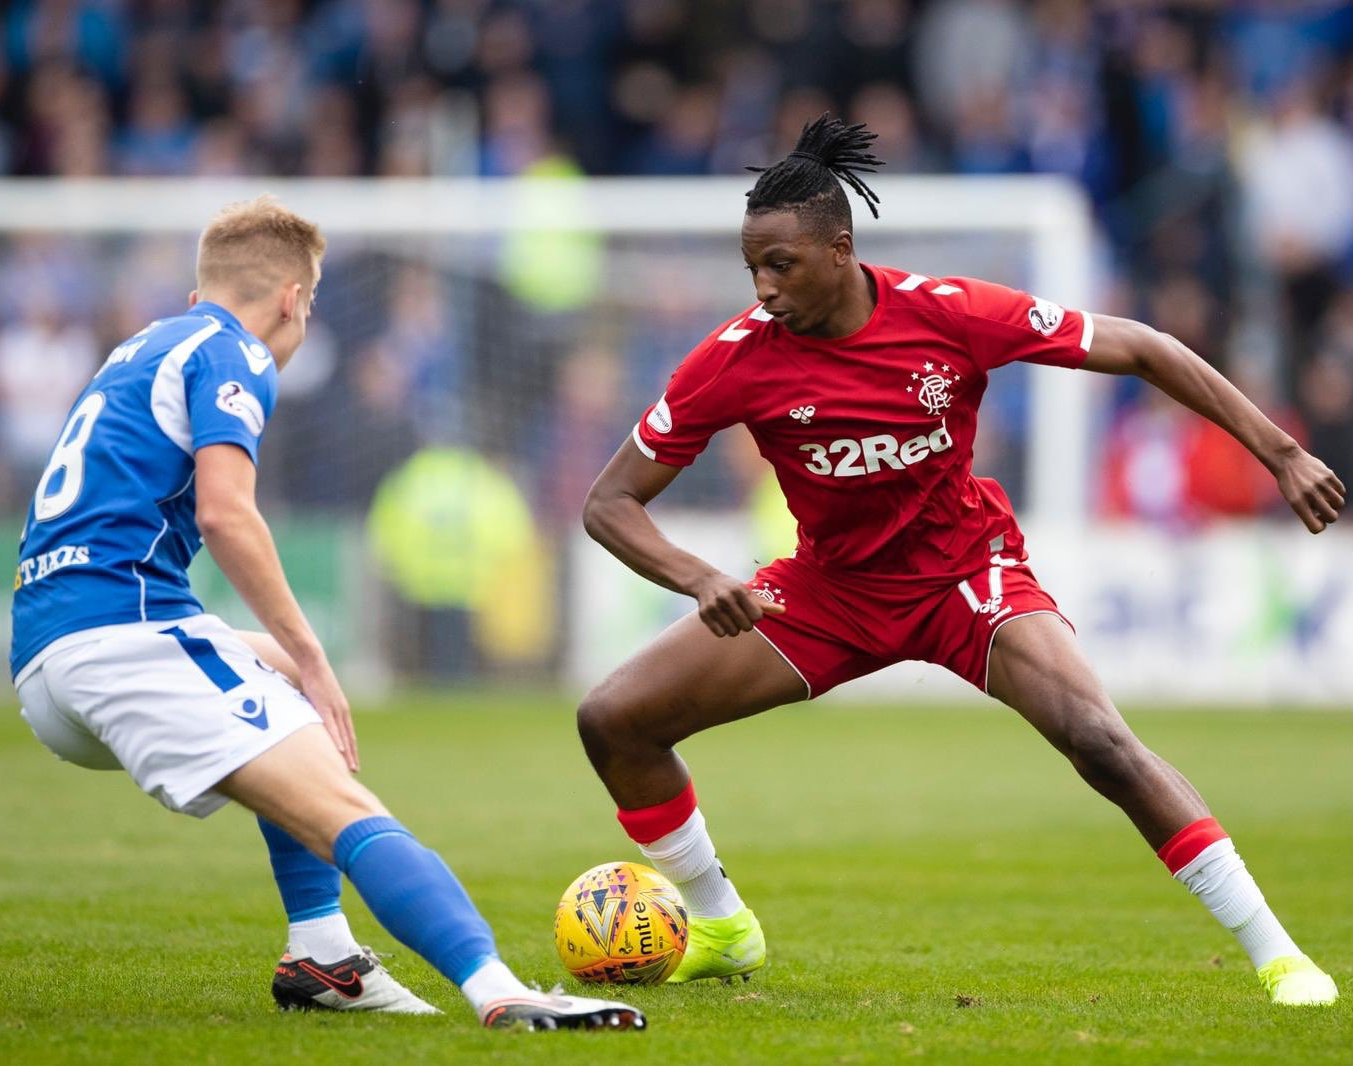 Aribo Eager To Keep Improving On Top Form For Rangers and Nigeria